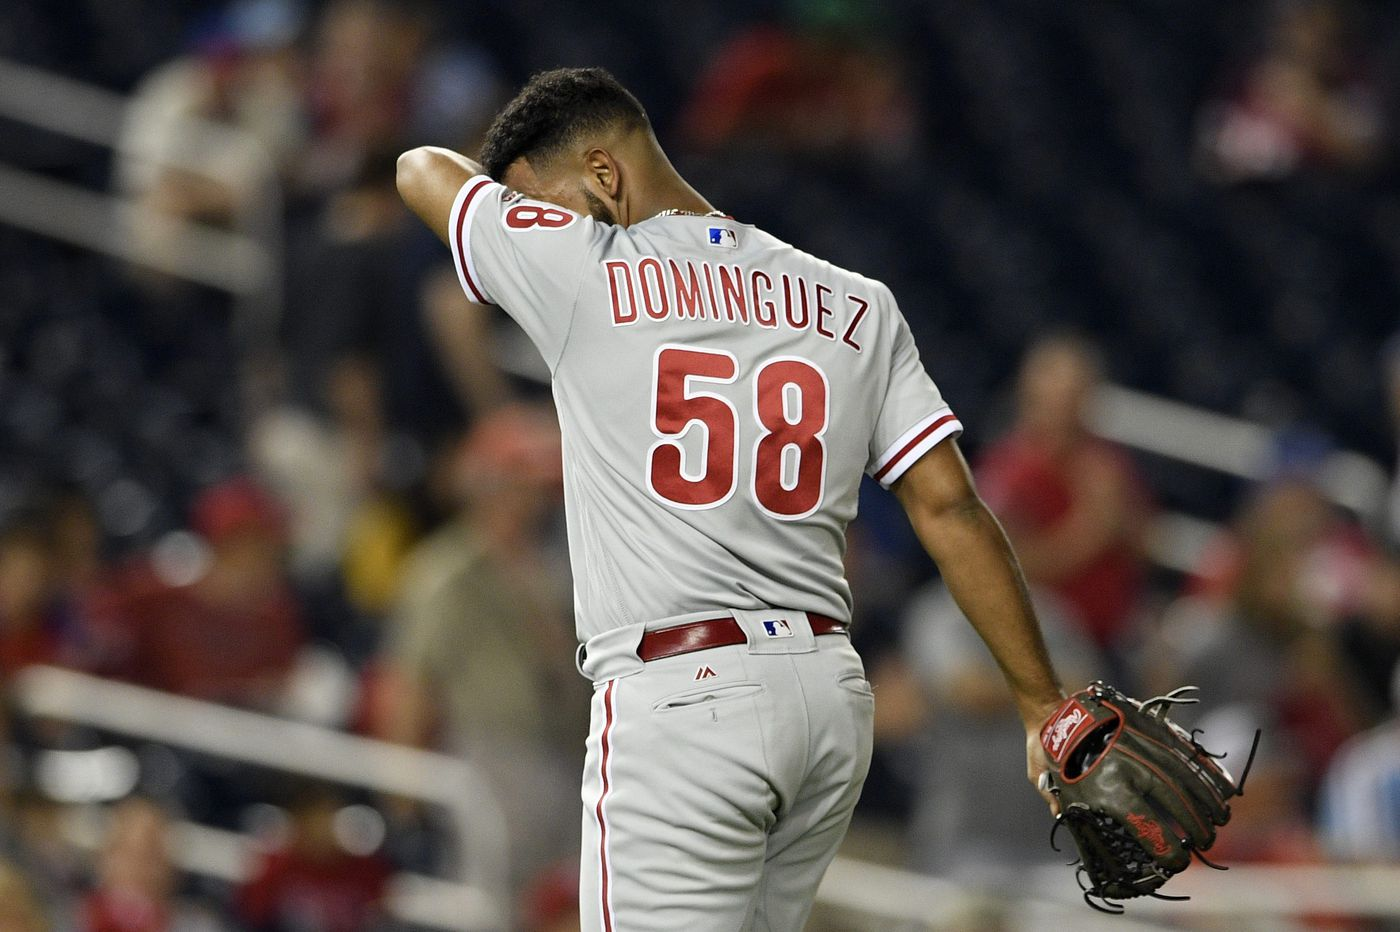 Phillies' bullpen coughs up lead in loss to Nationals